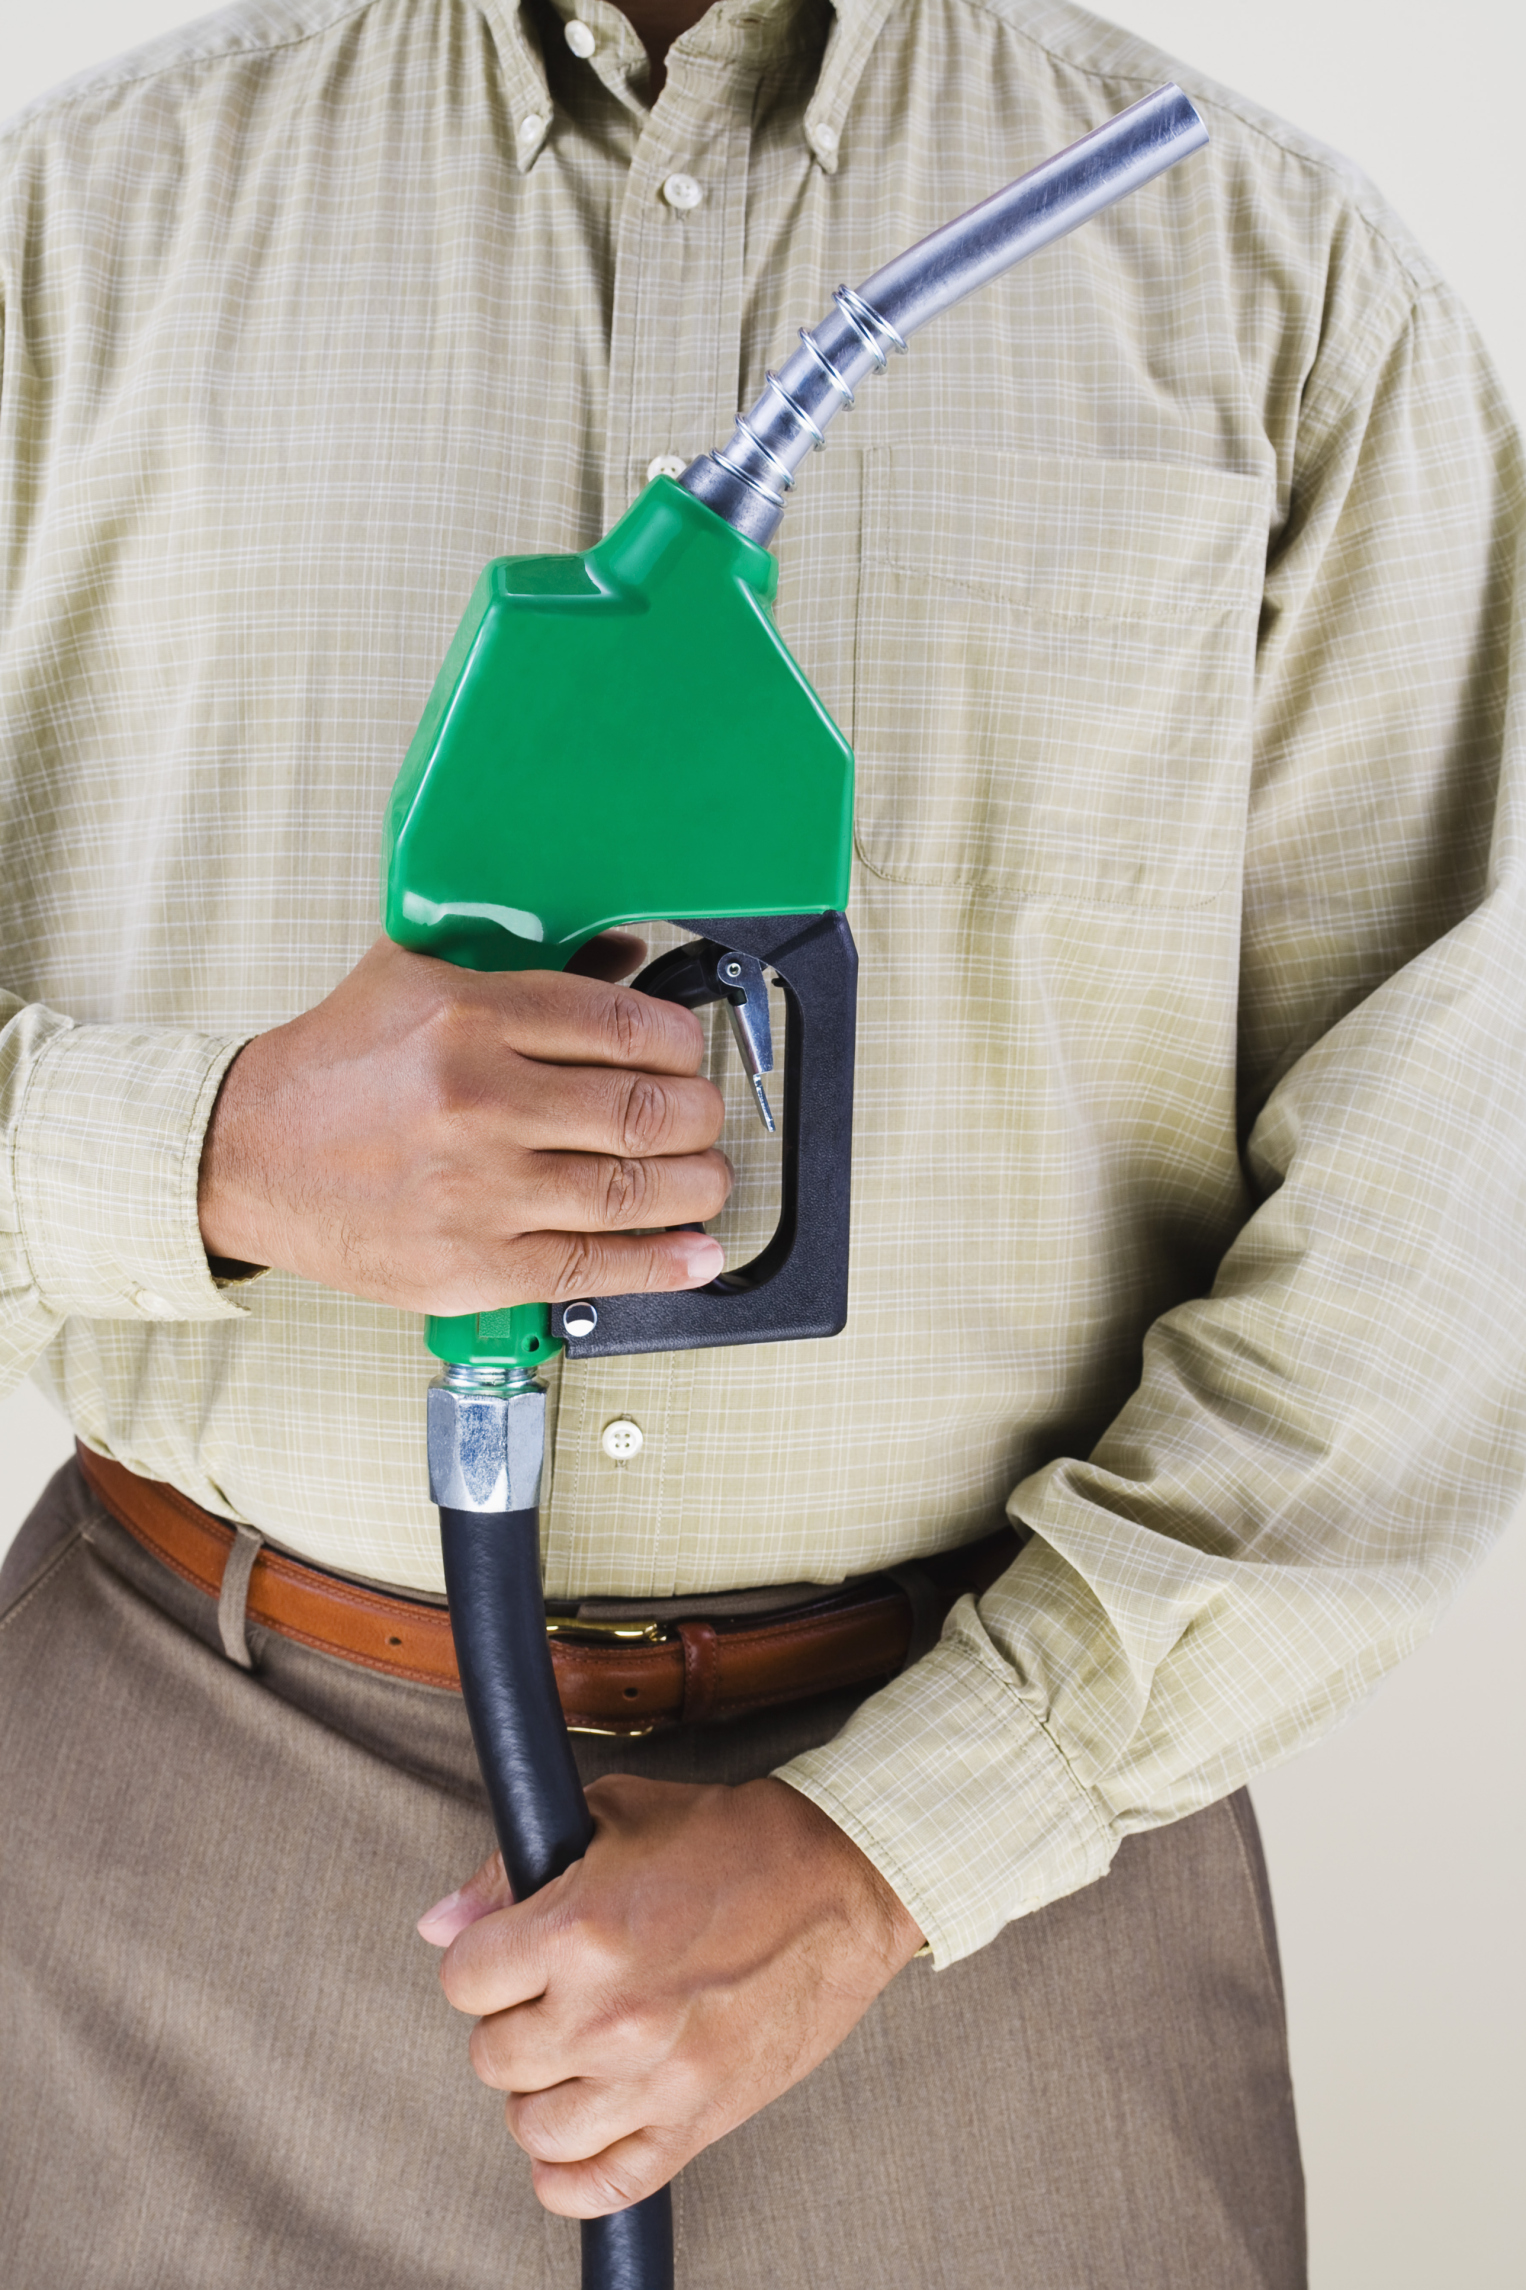 Diesel Fuel Vs  Home Heating Oil